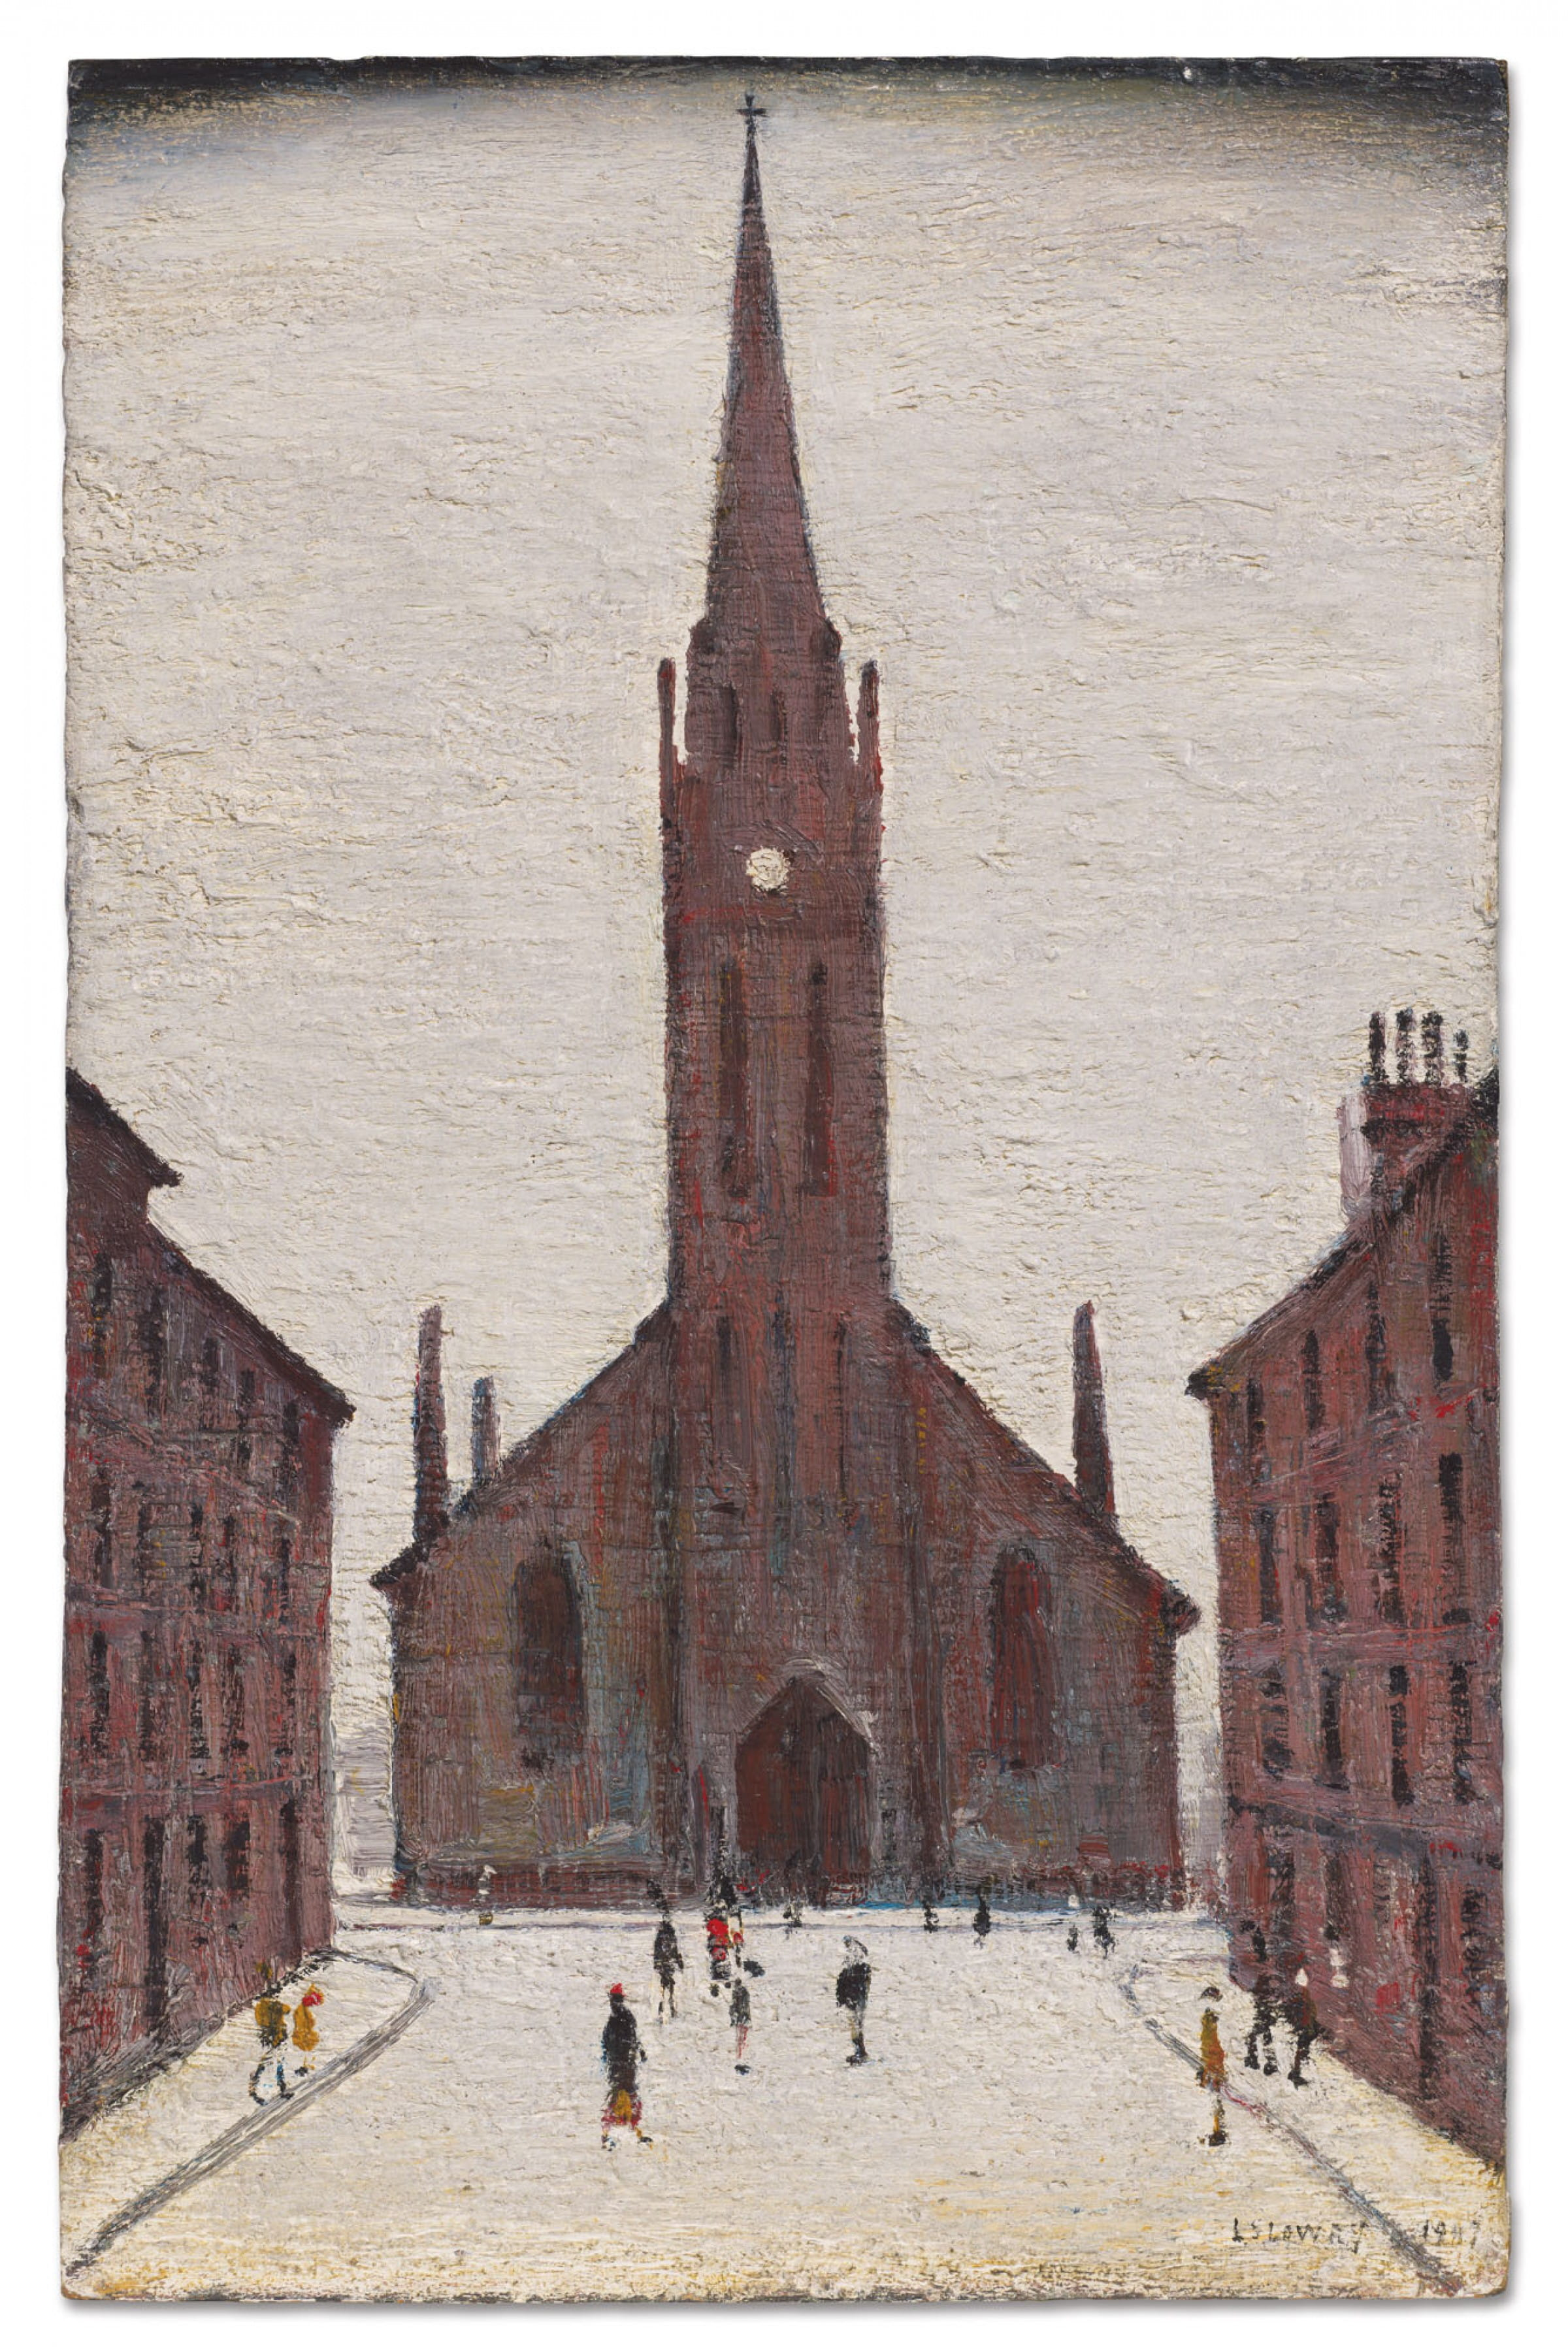 Lowry comes to town (St Matthew's Church, Bath Street, 1947, by LS Lowry)